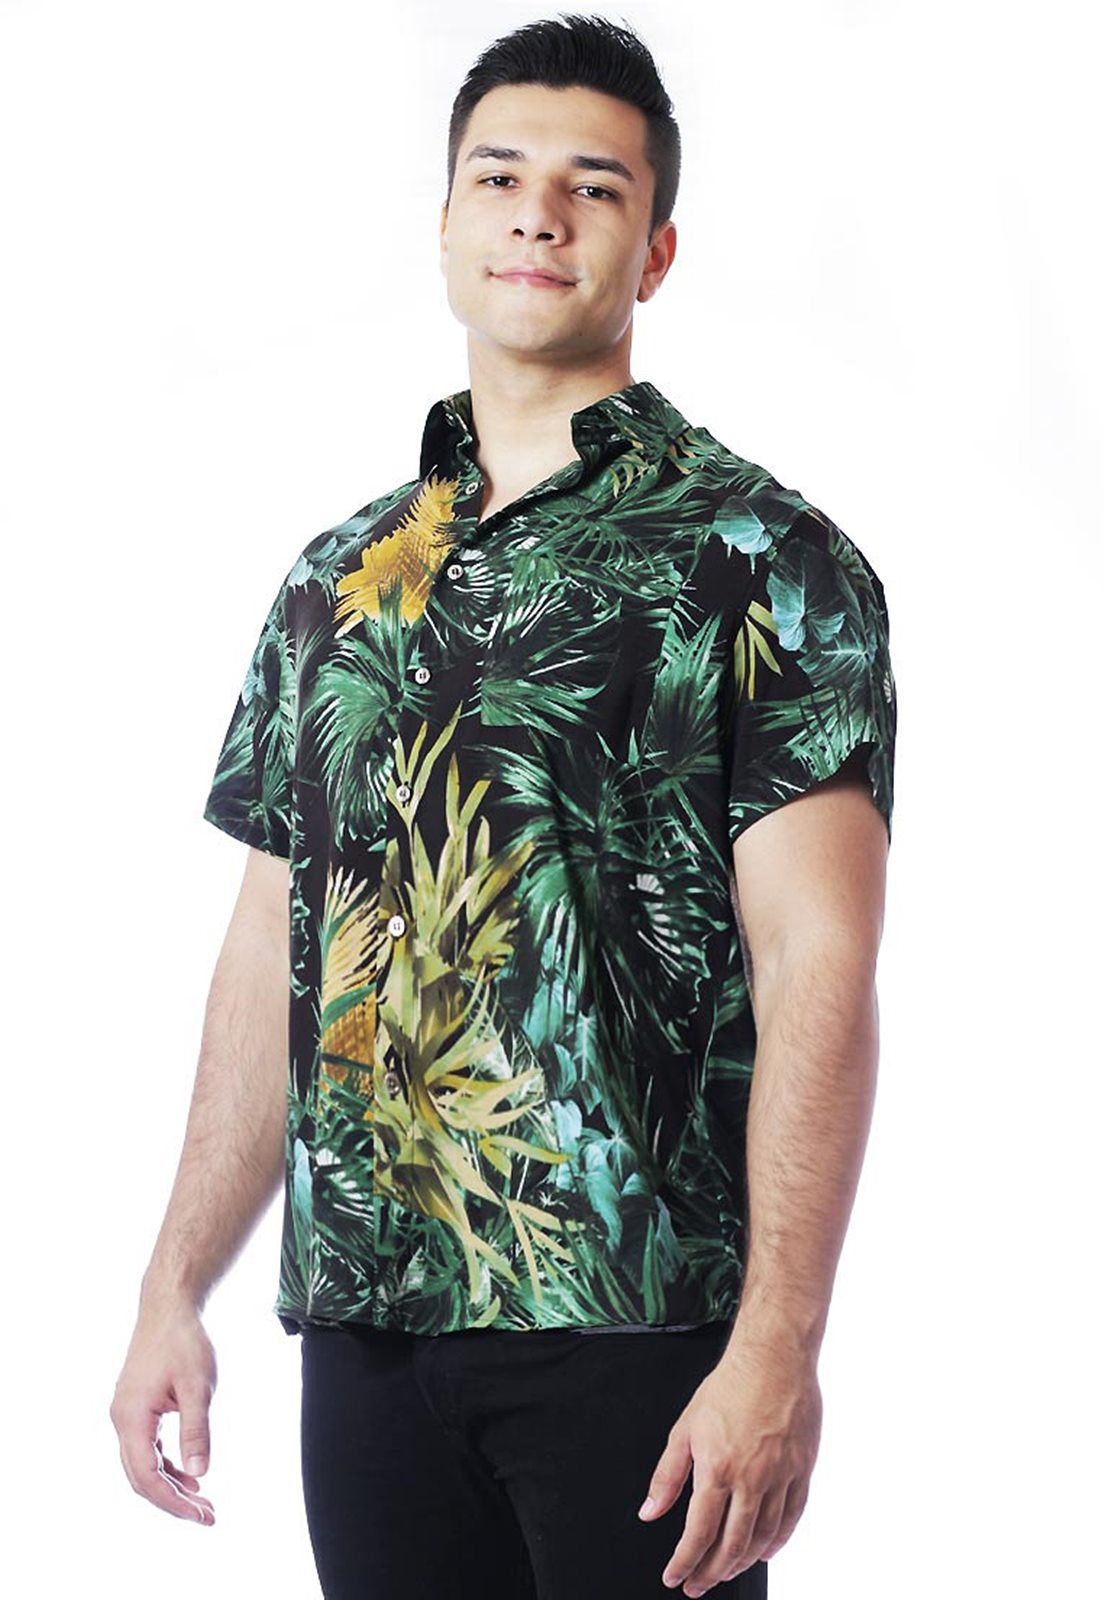 Camisa Tropical Estampada ElephunK Unissex Safari Verde